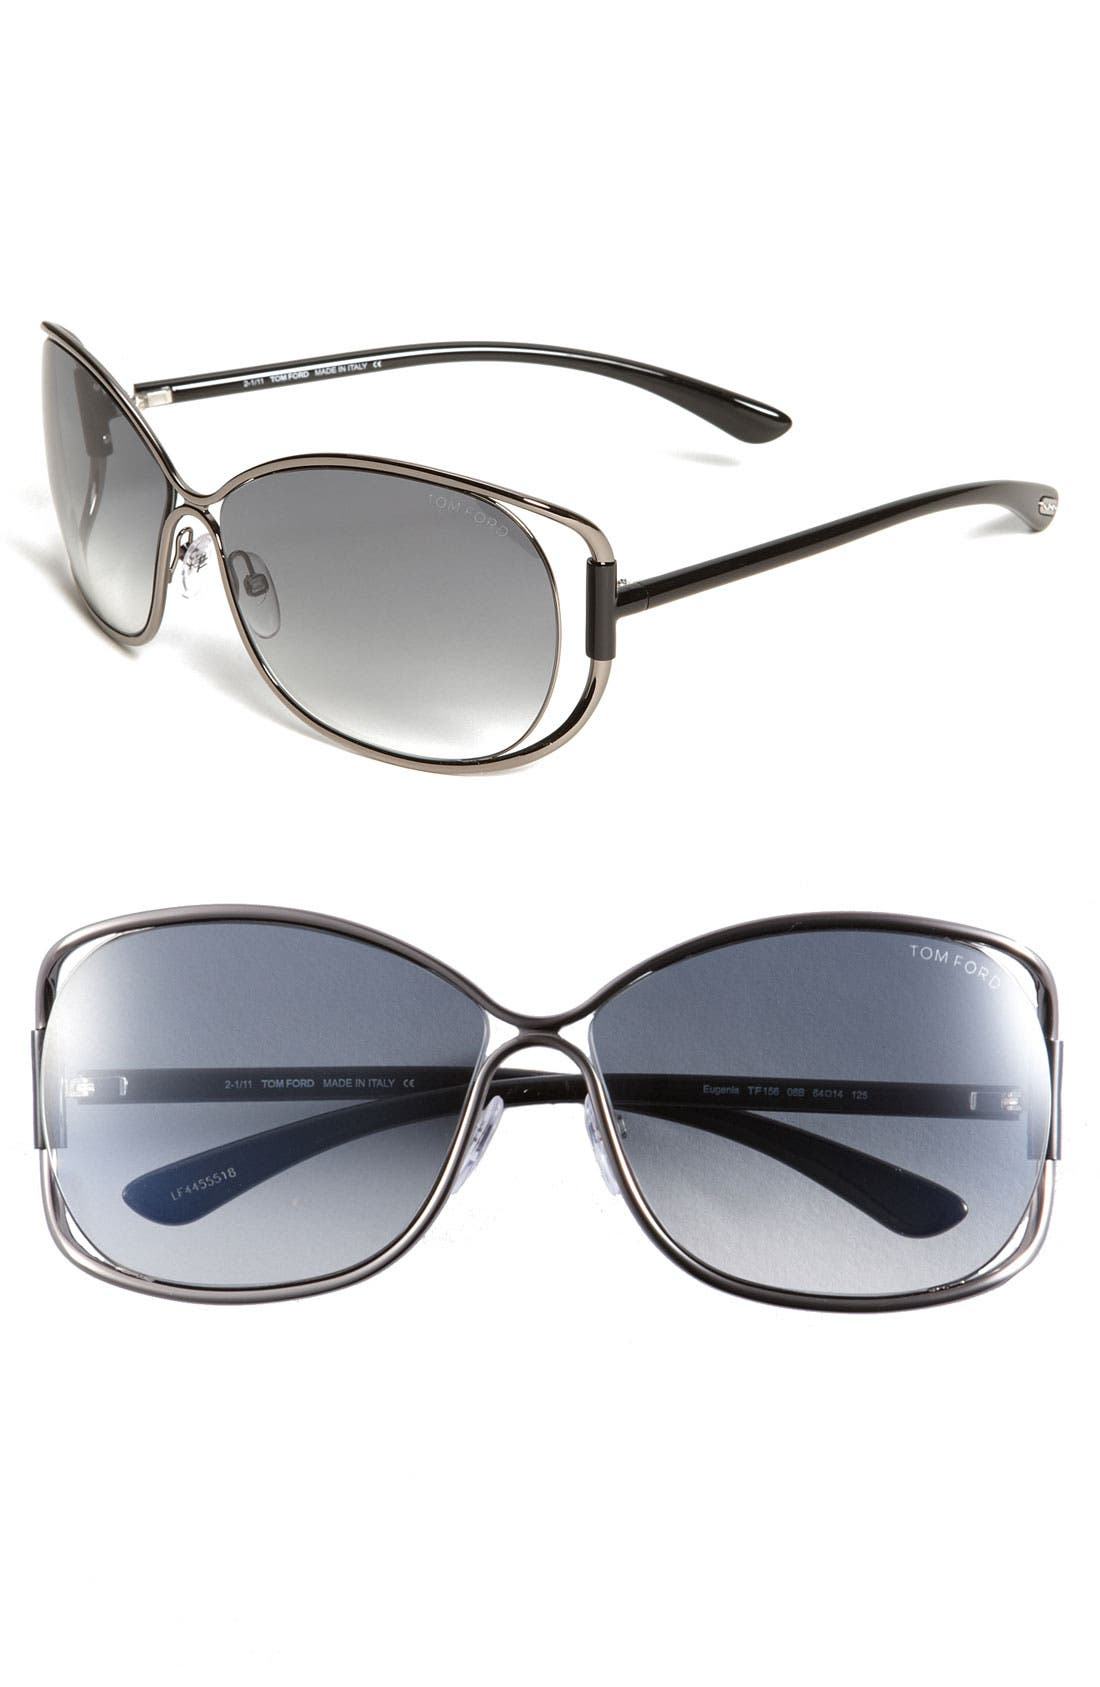 Main Image - Tom Ford 'Eugenia' 64mm Open Temple Sunglasses